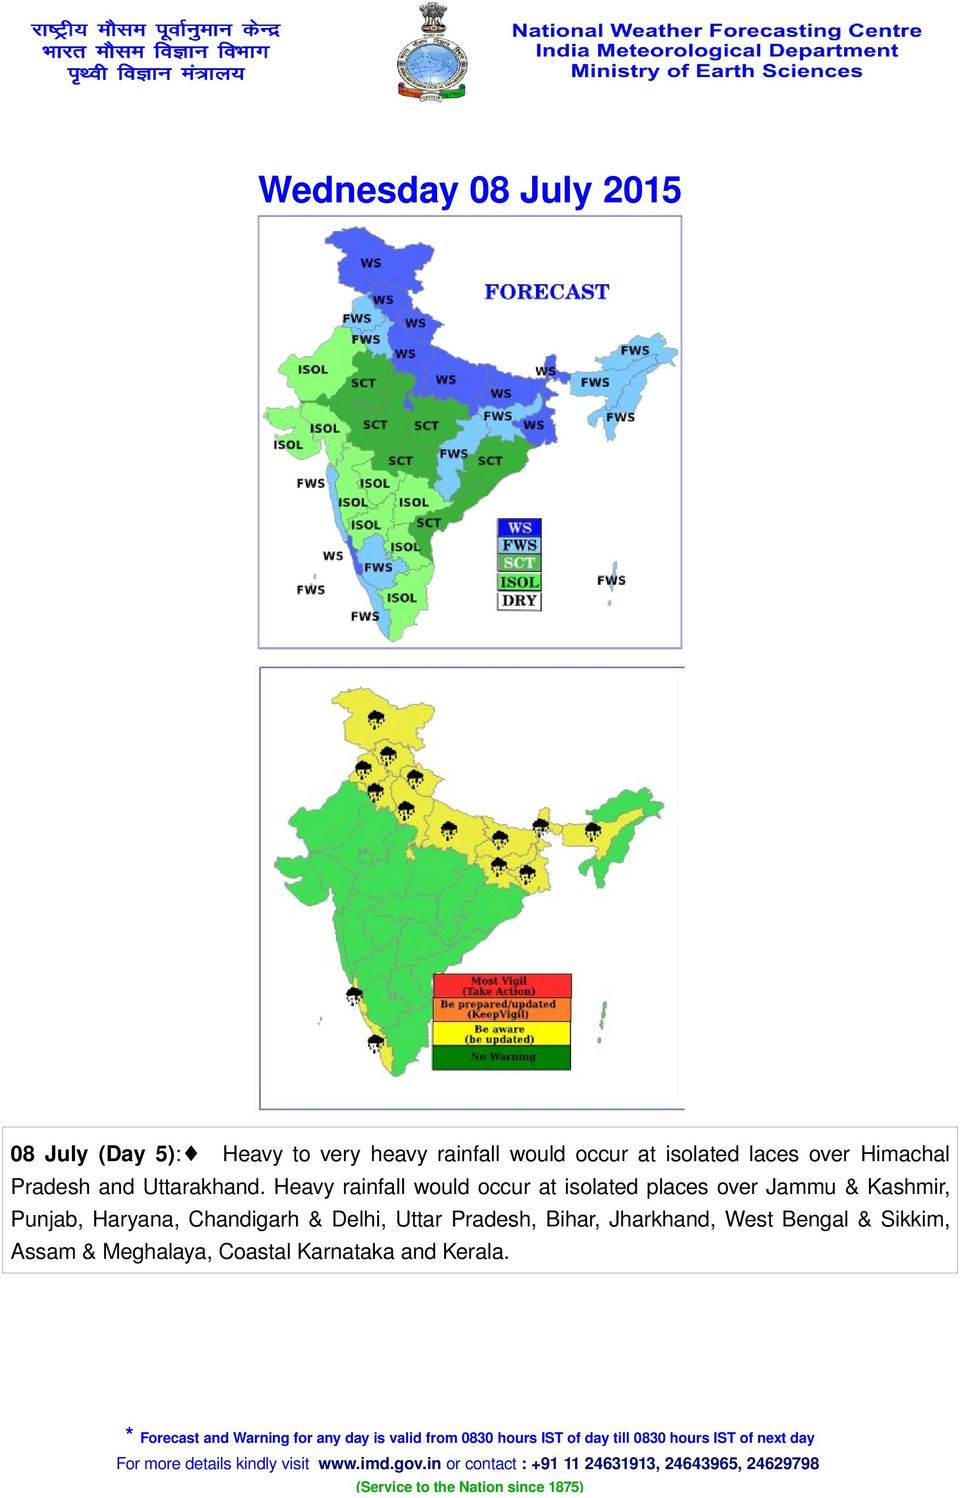 Heavy rainfall would occur at isolated places over Jammu & Kashmir, Punjab, Haryana,